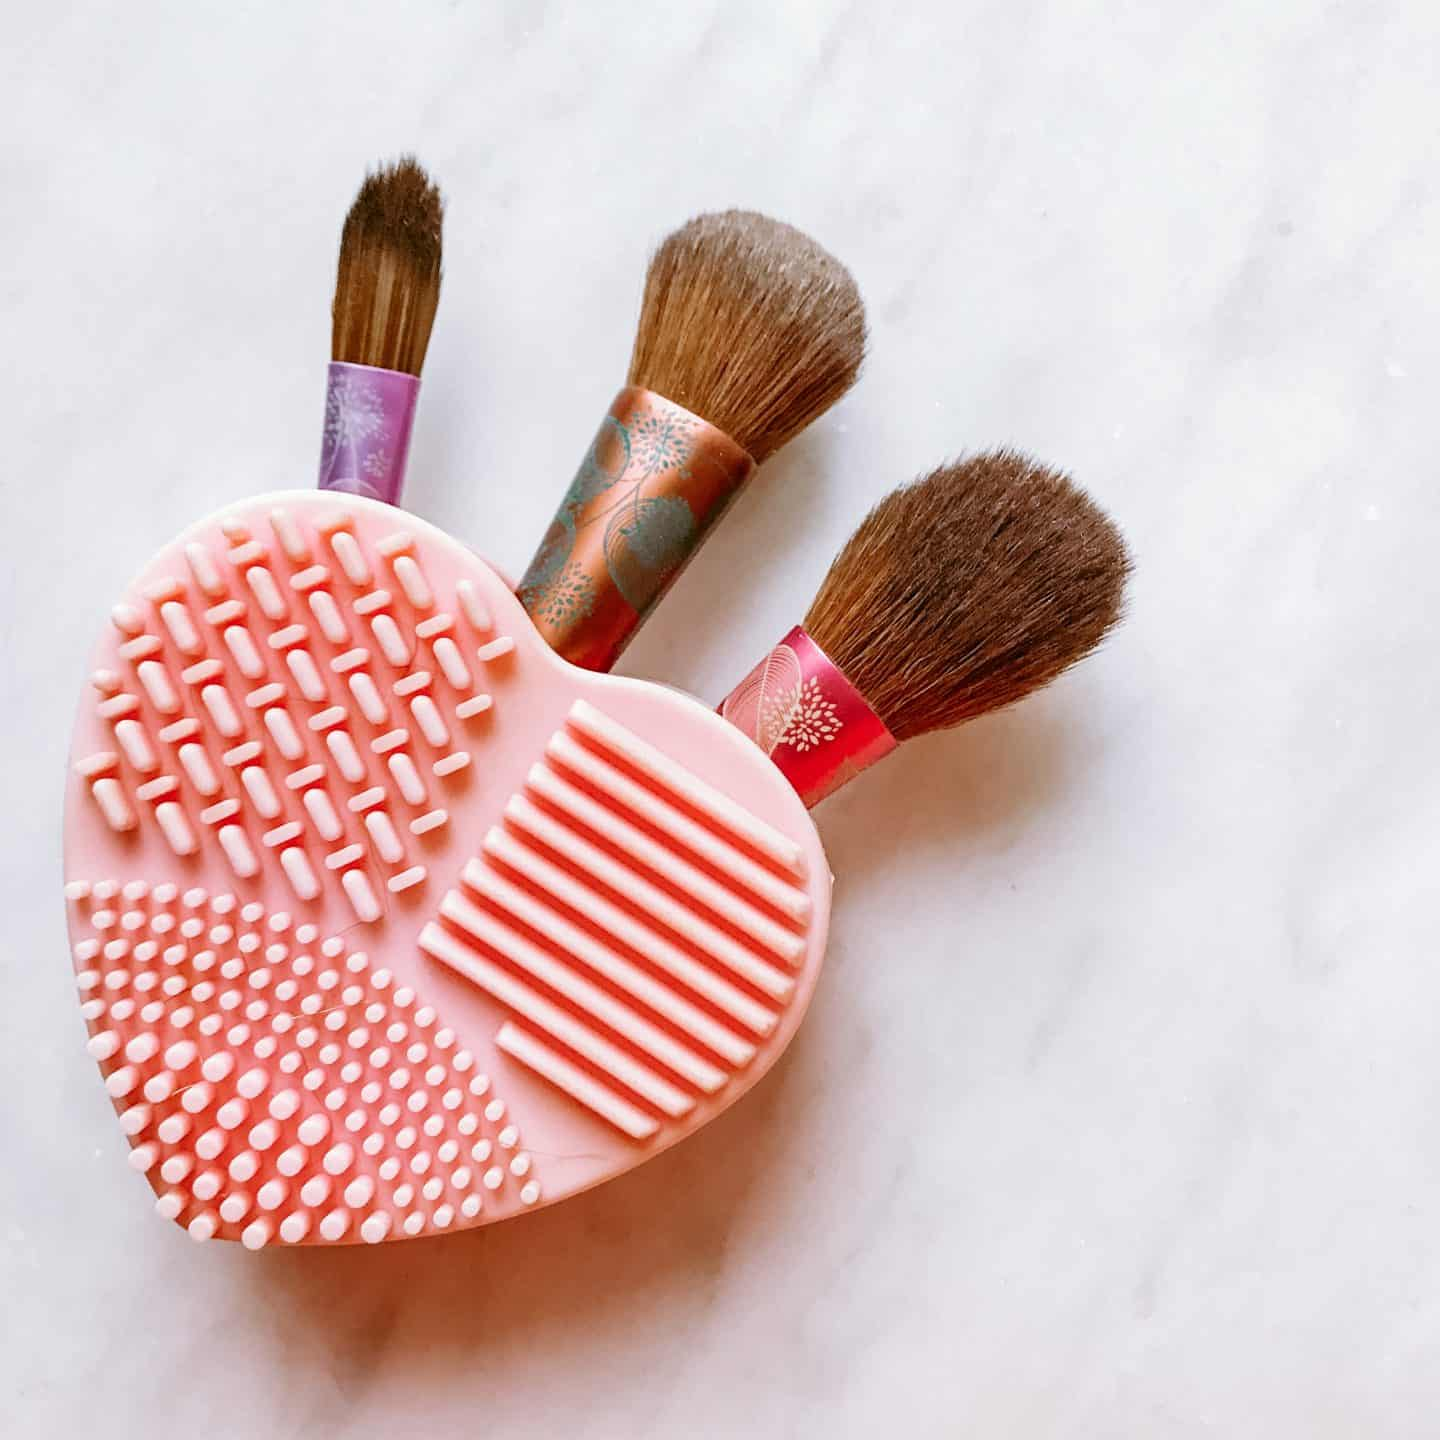 Make-up brush cleaner and brushes